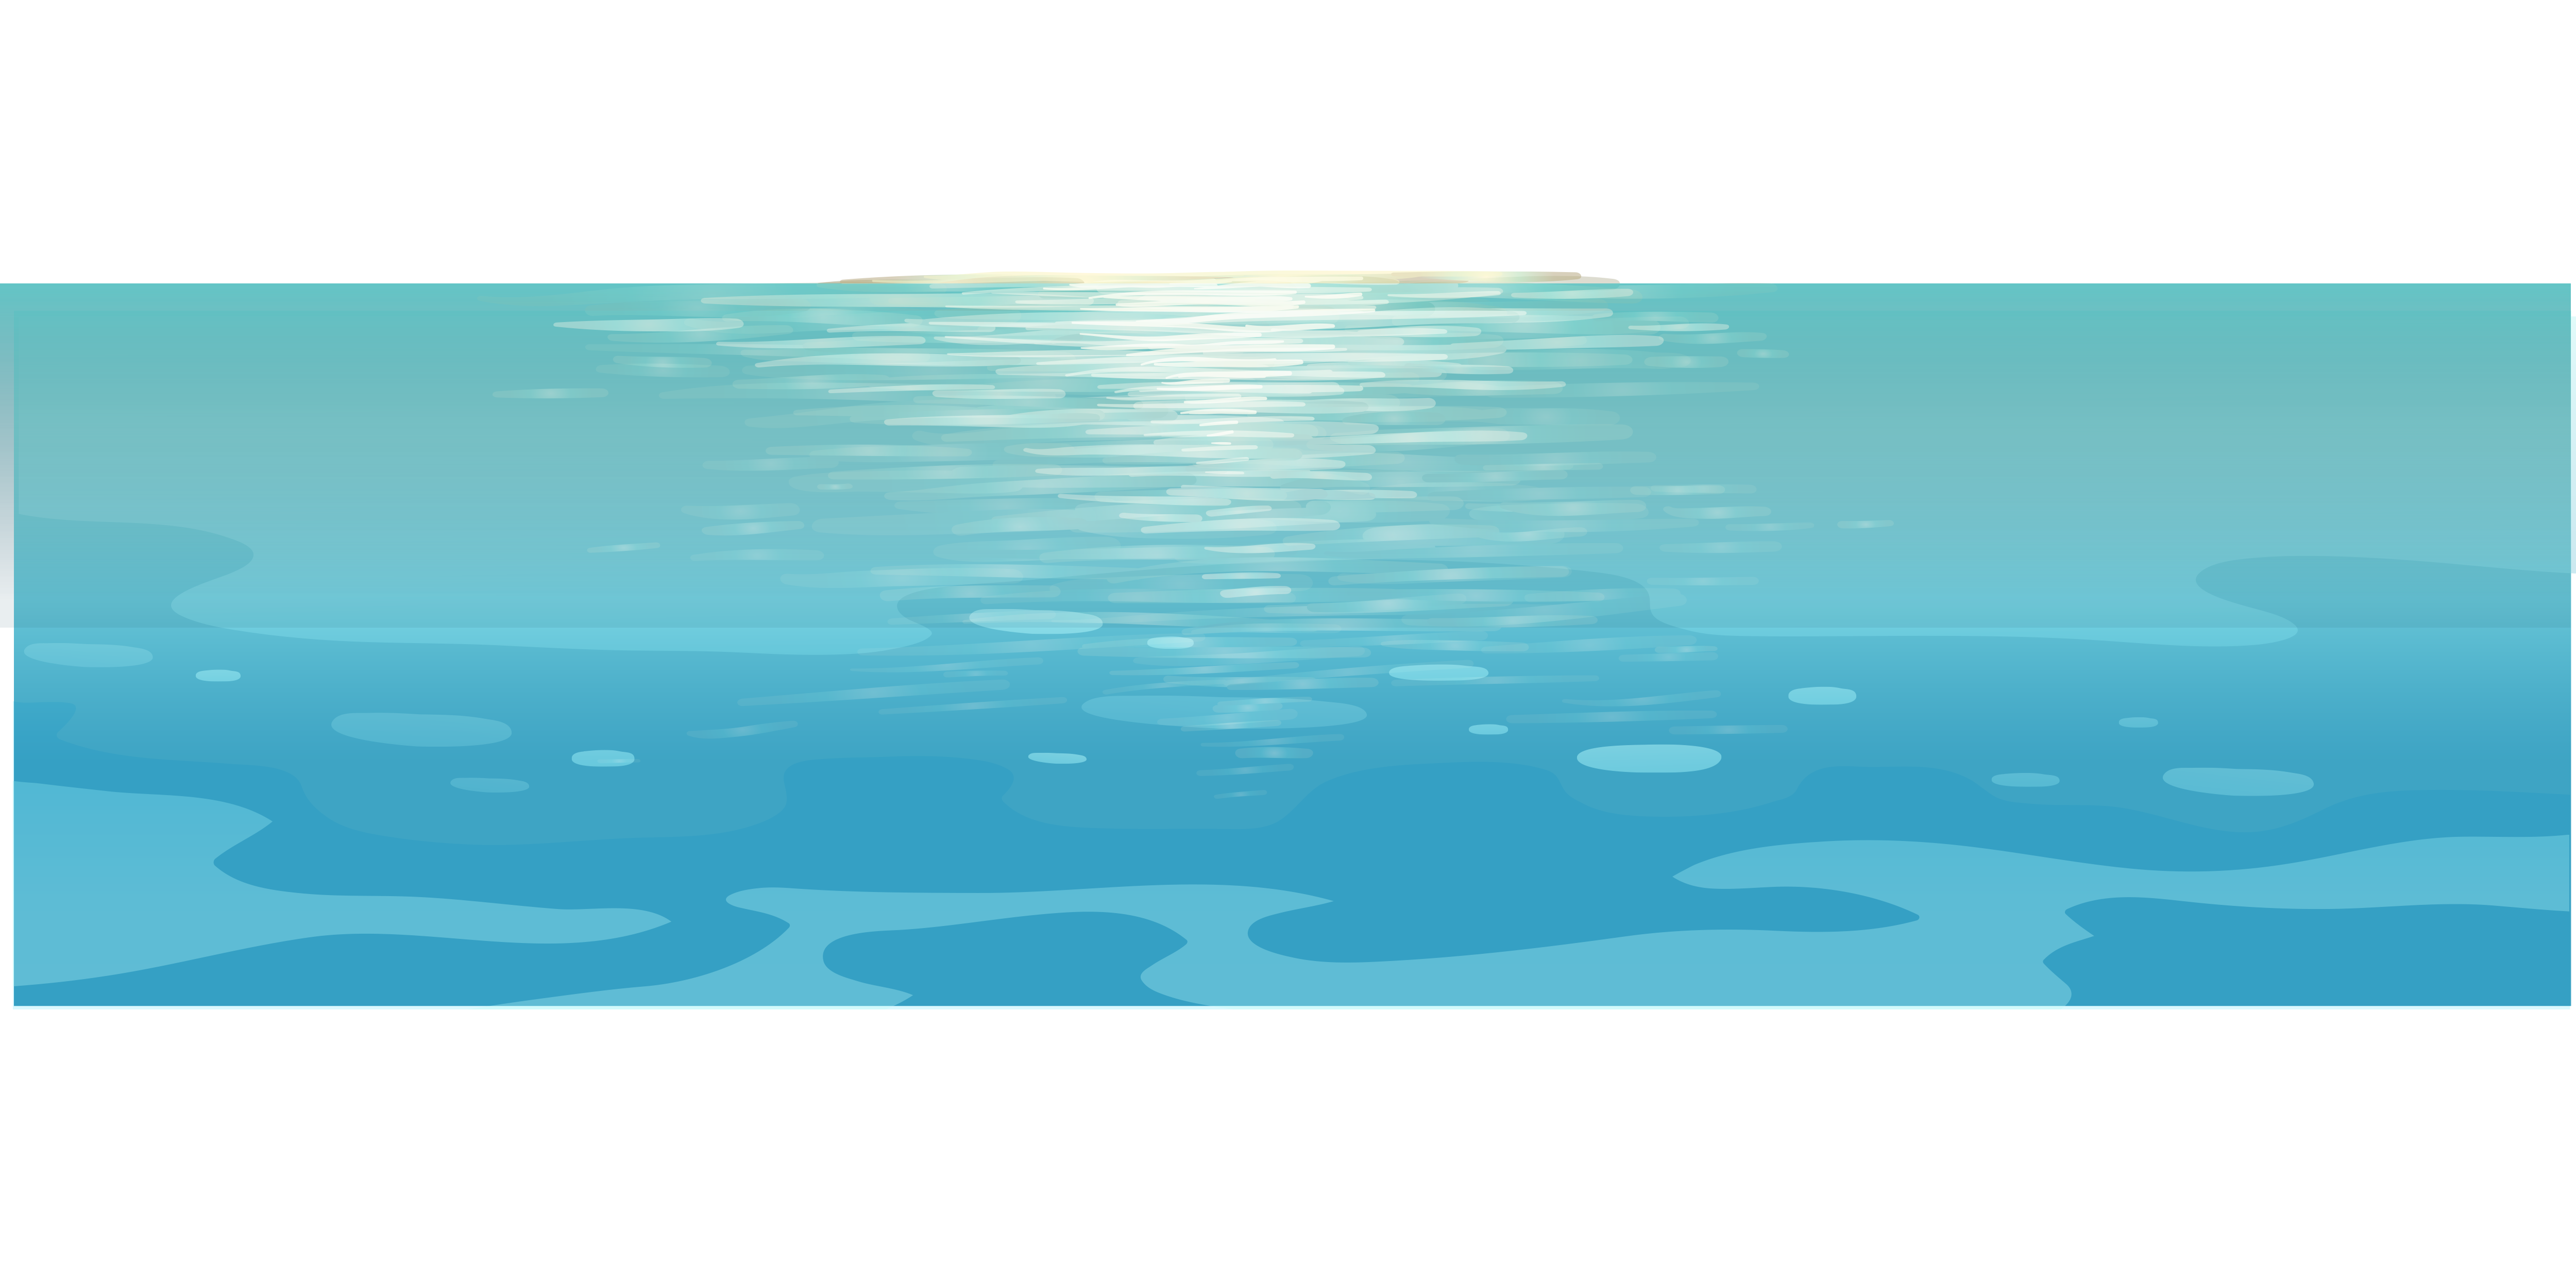 Lake clipart lago. Png images gallery for